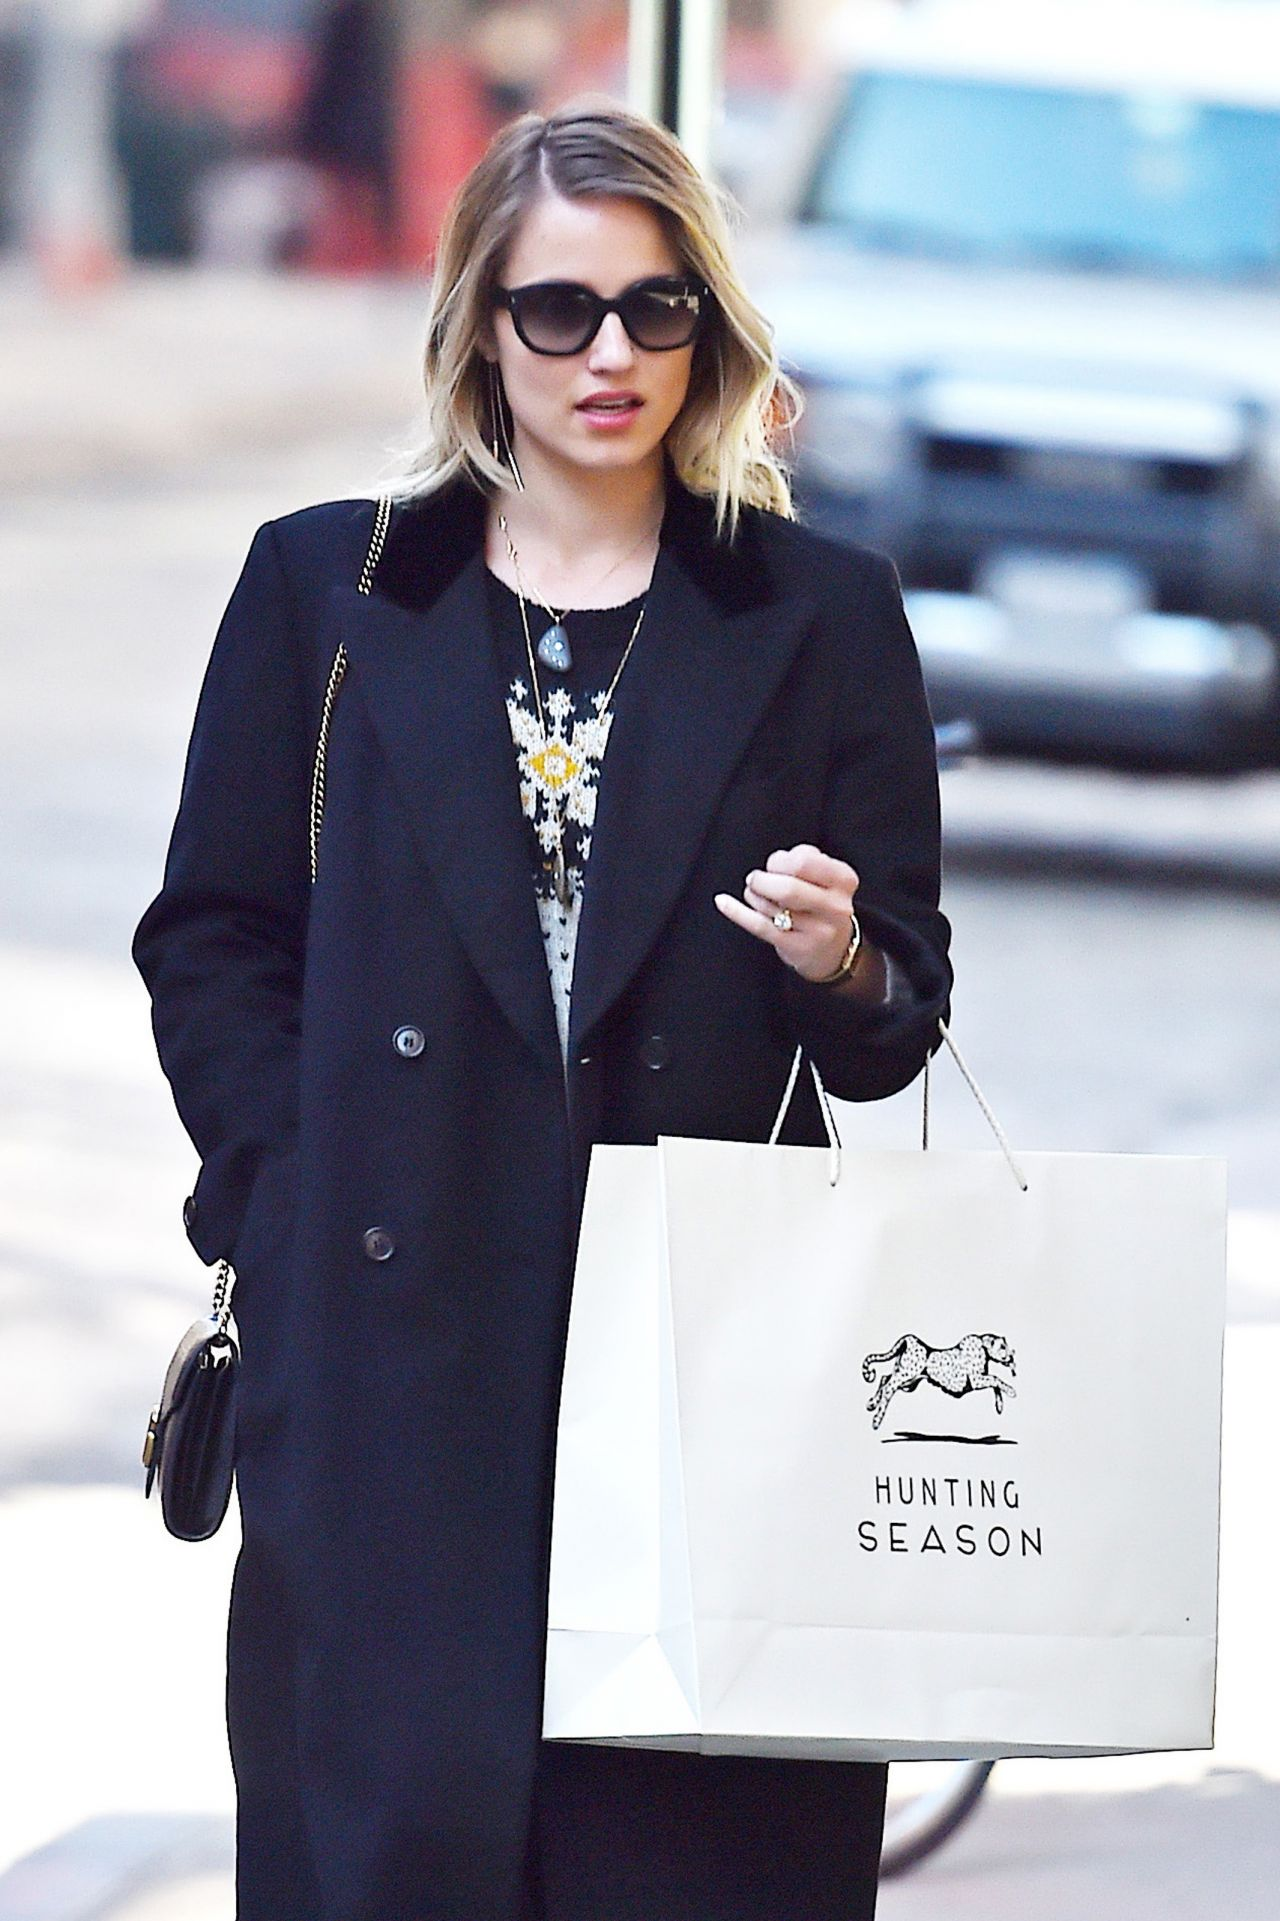 Amazing Dianna Agron Arriving At JFK Airport In NYC May 25 2013 0 Comments